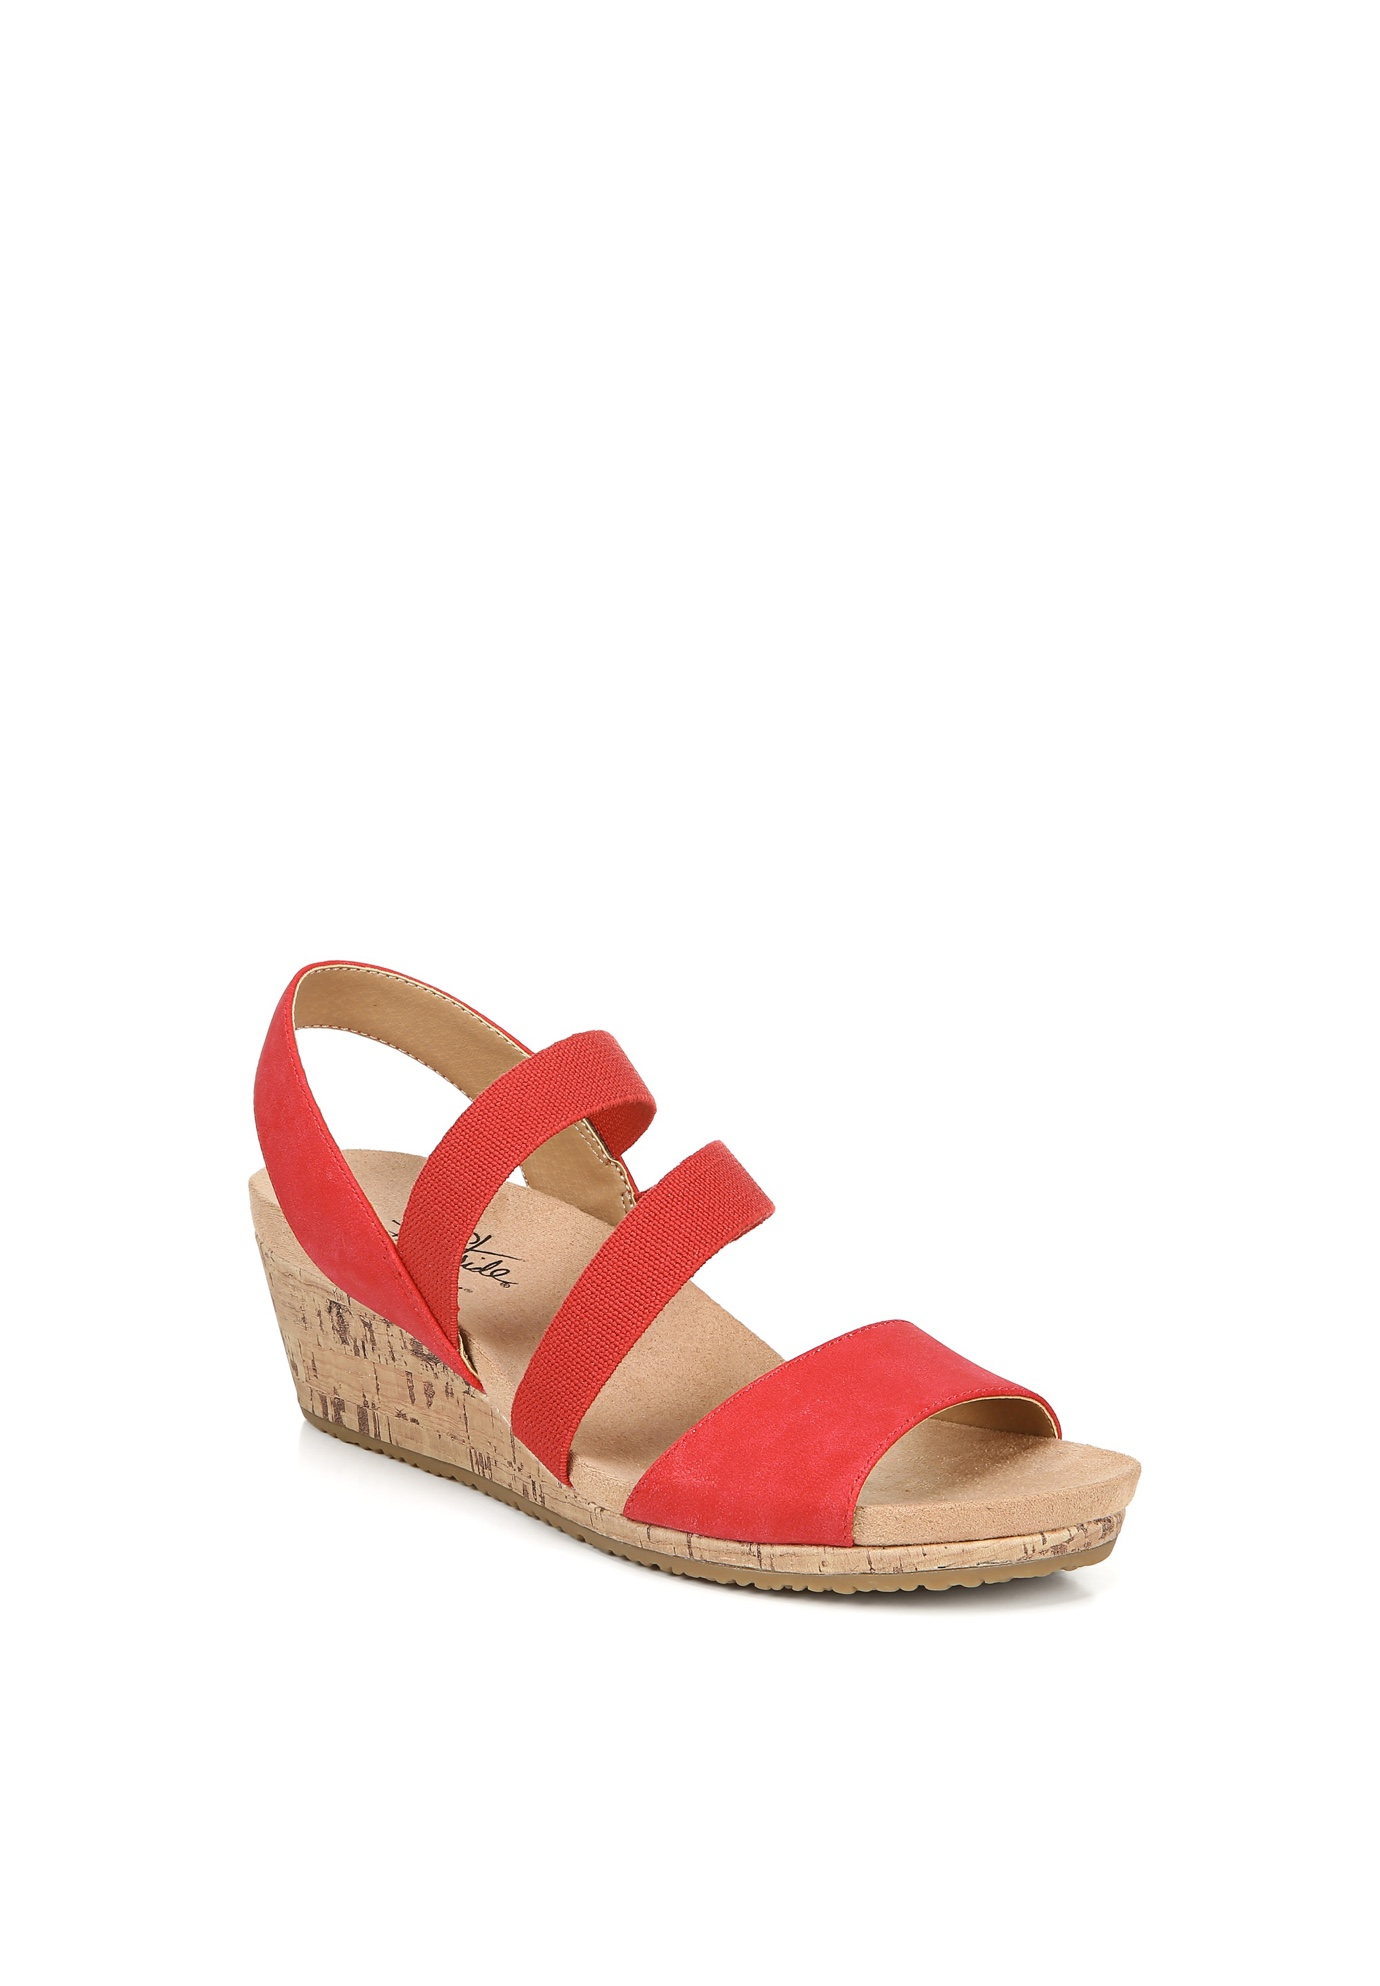 Marina Sandals by LifeStride,